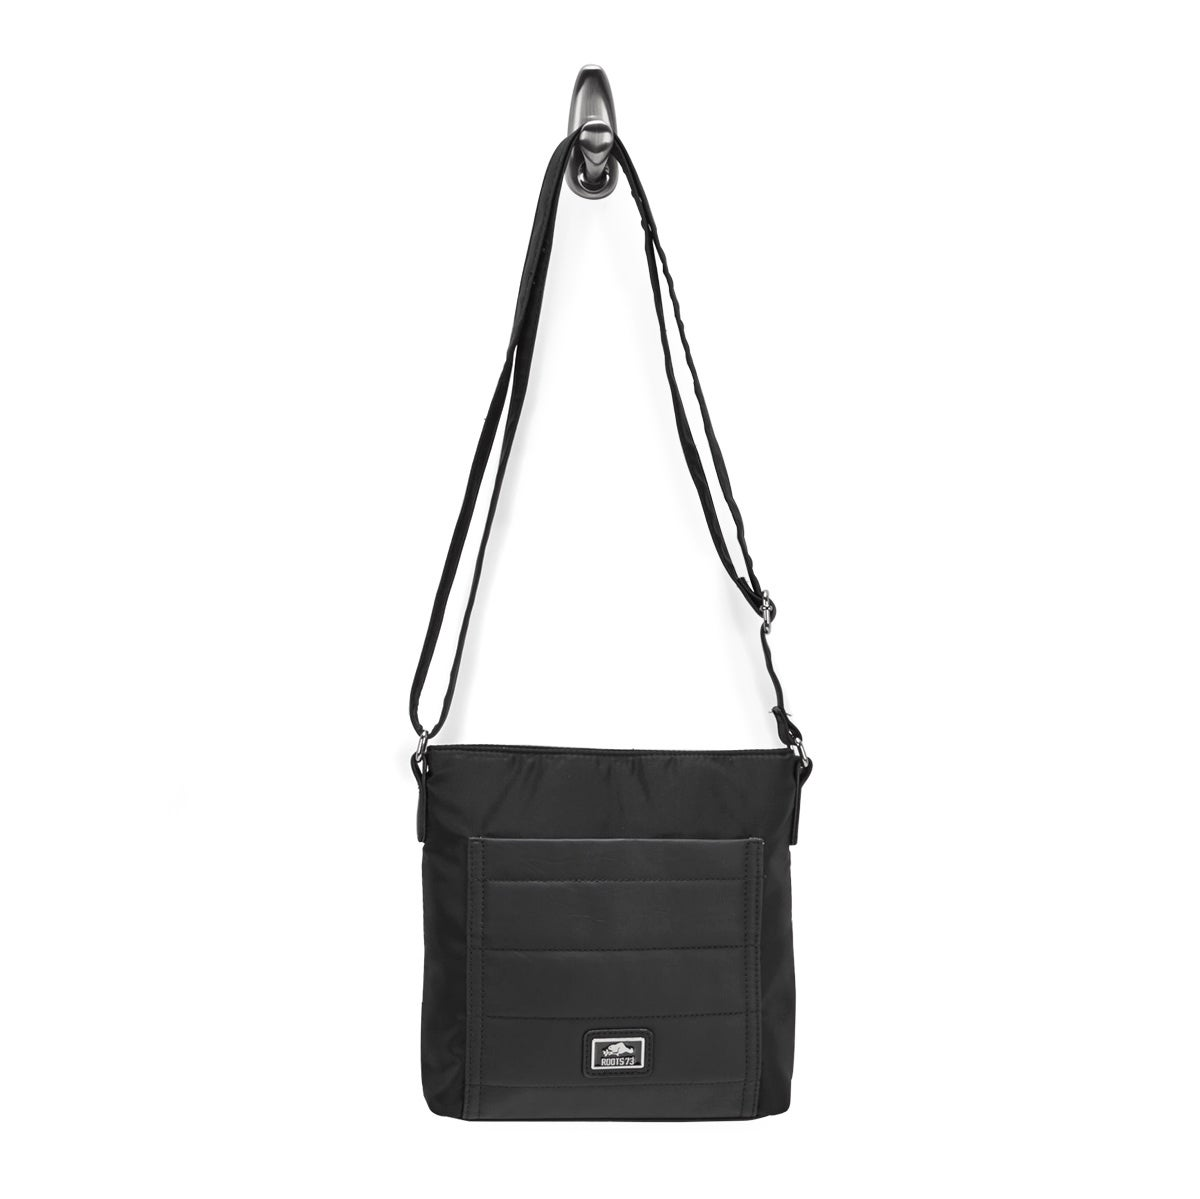 Lds Roots73 blk quilted crossbody bag